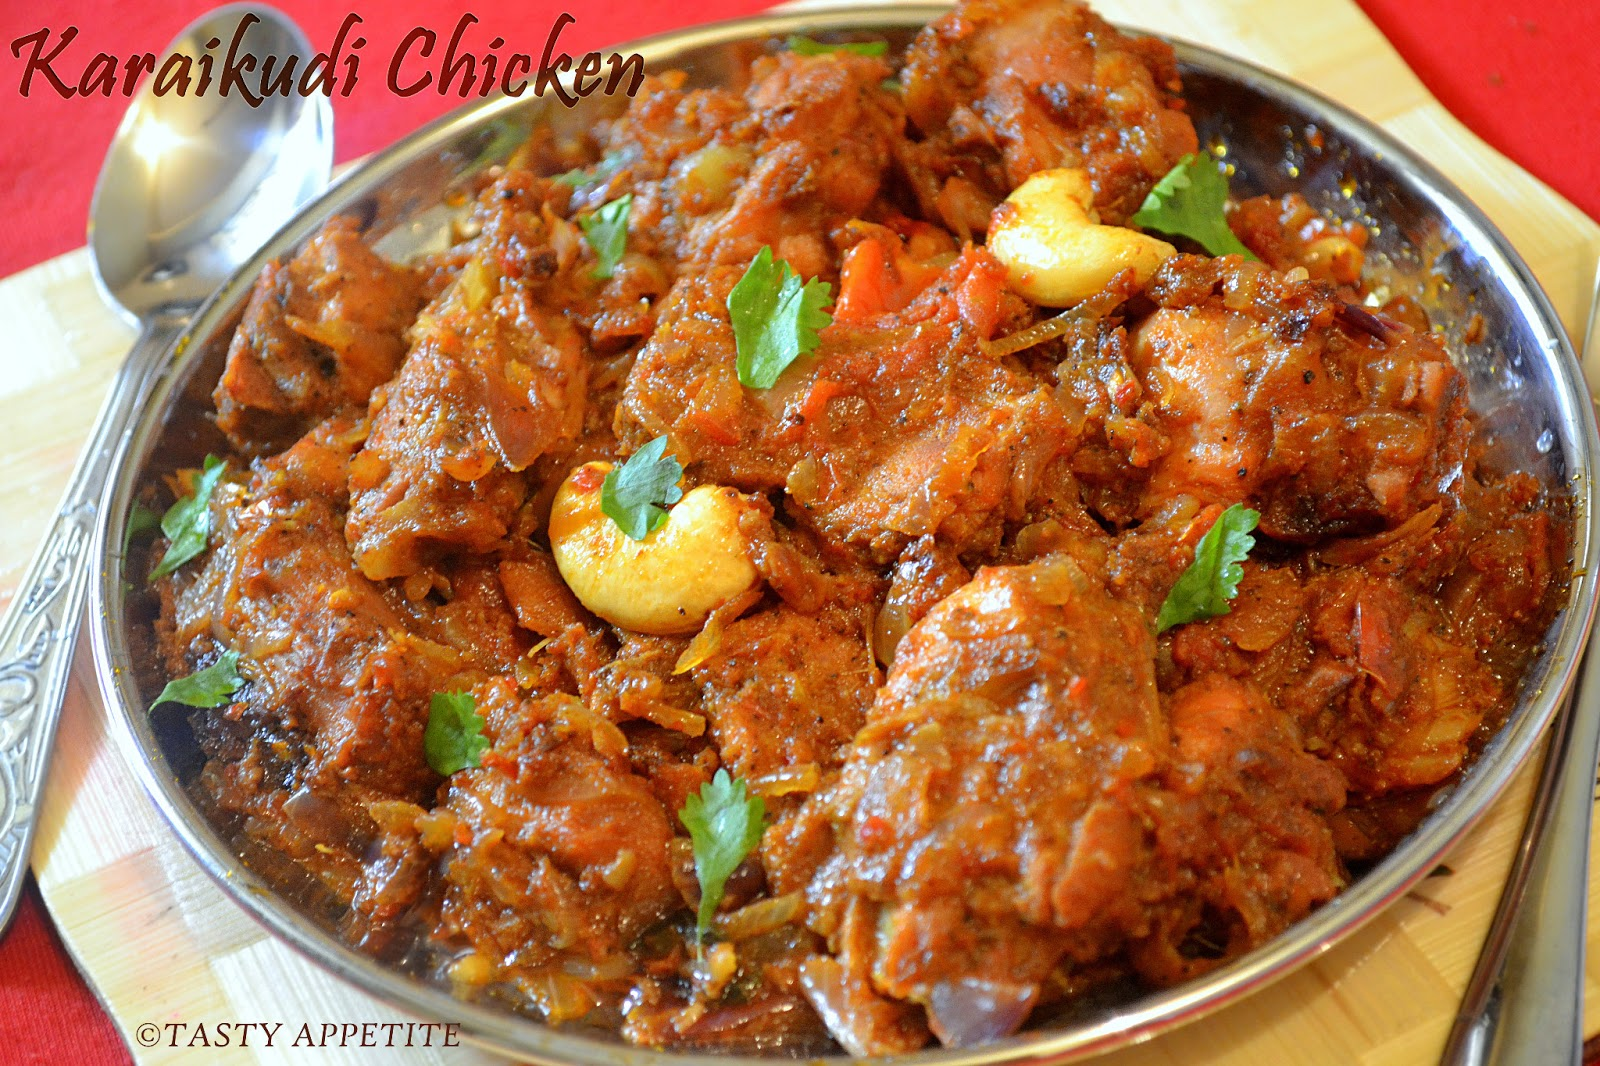 In pdf recipes chettinad tamil